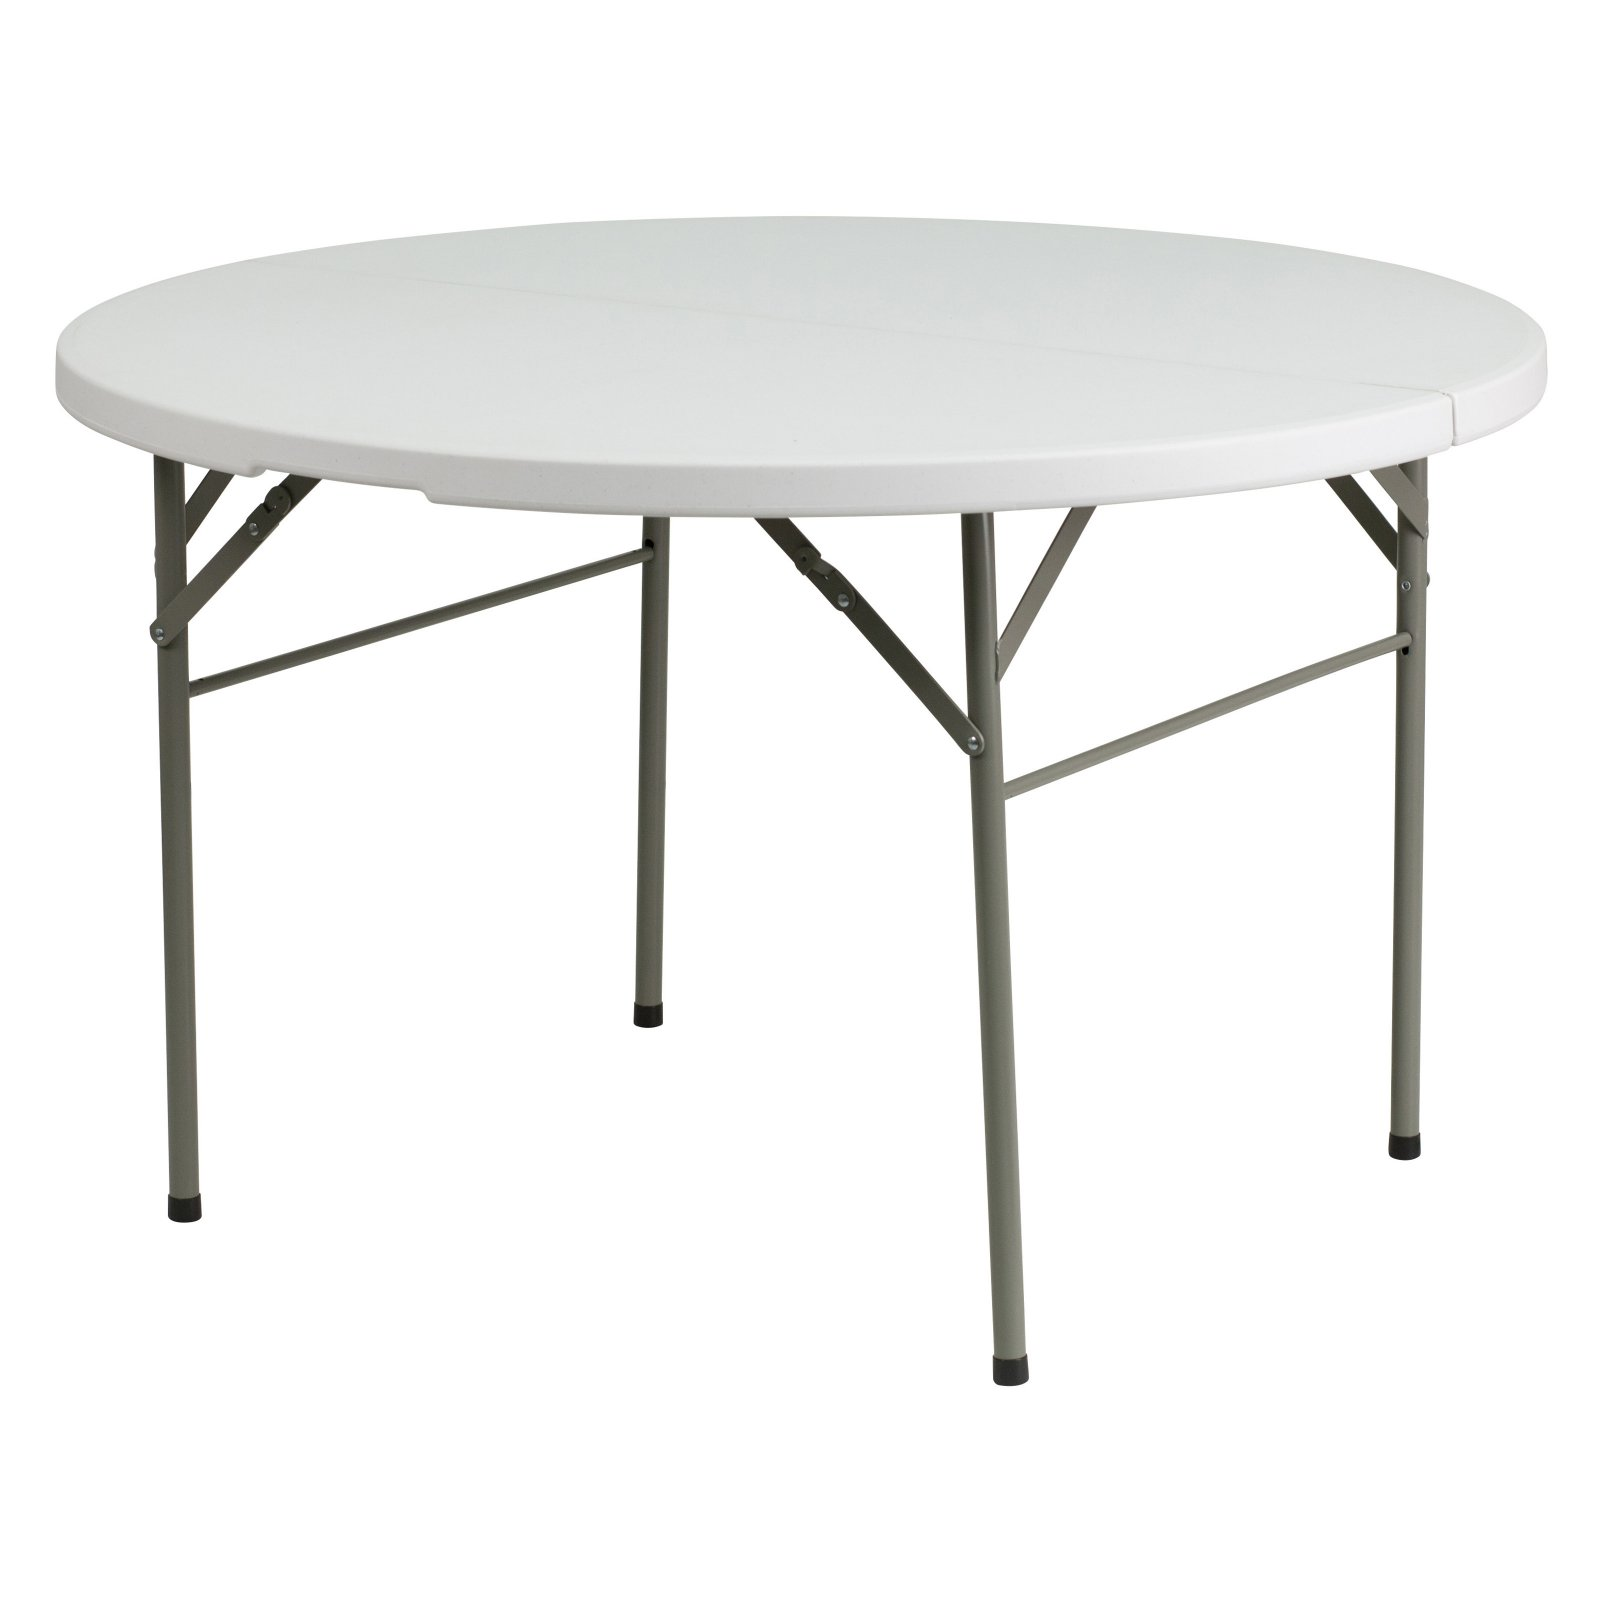 Beau Flash Furniture 48u0027u0027 Round Bi Fold Granite White Plastic Folding Table